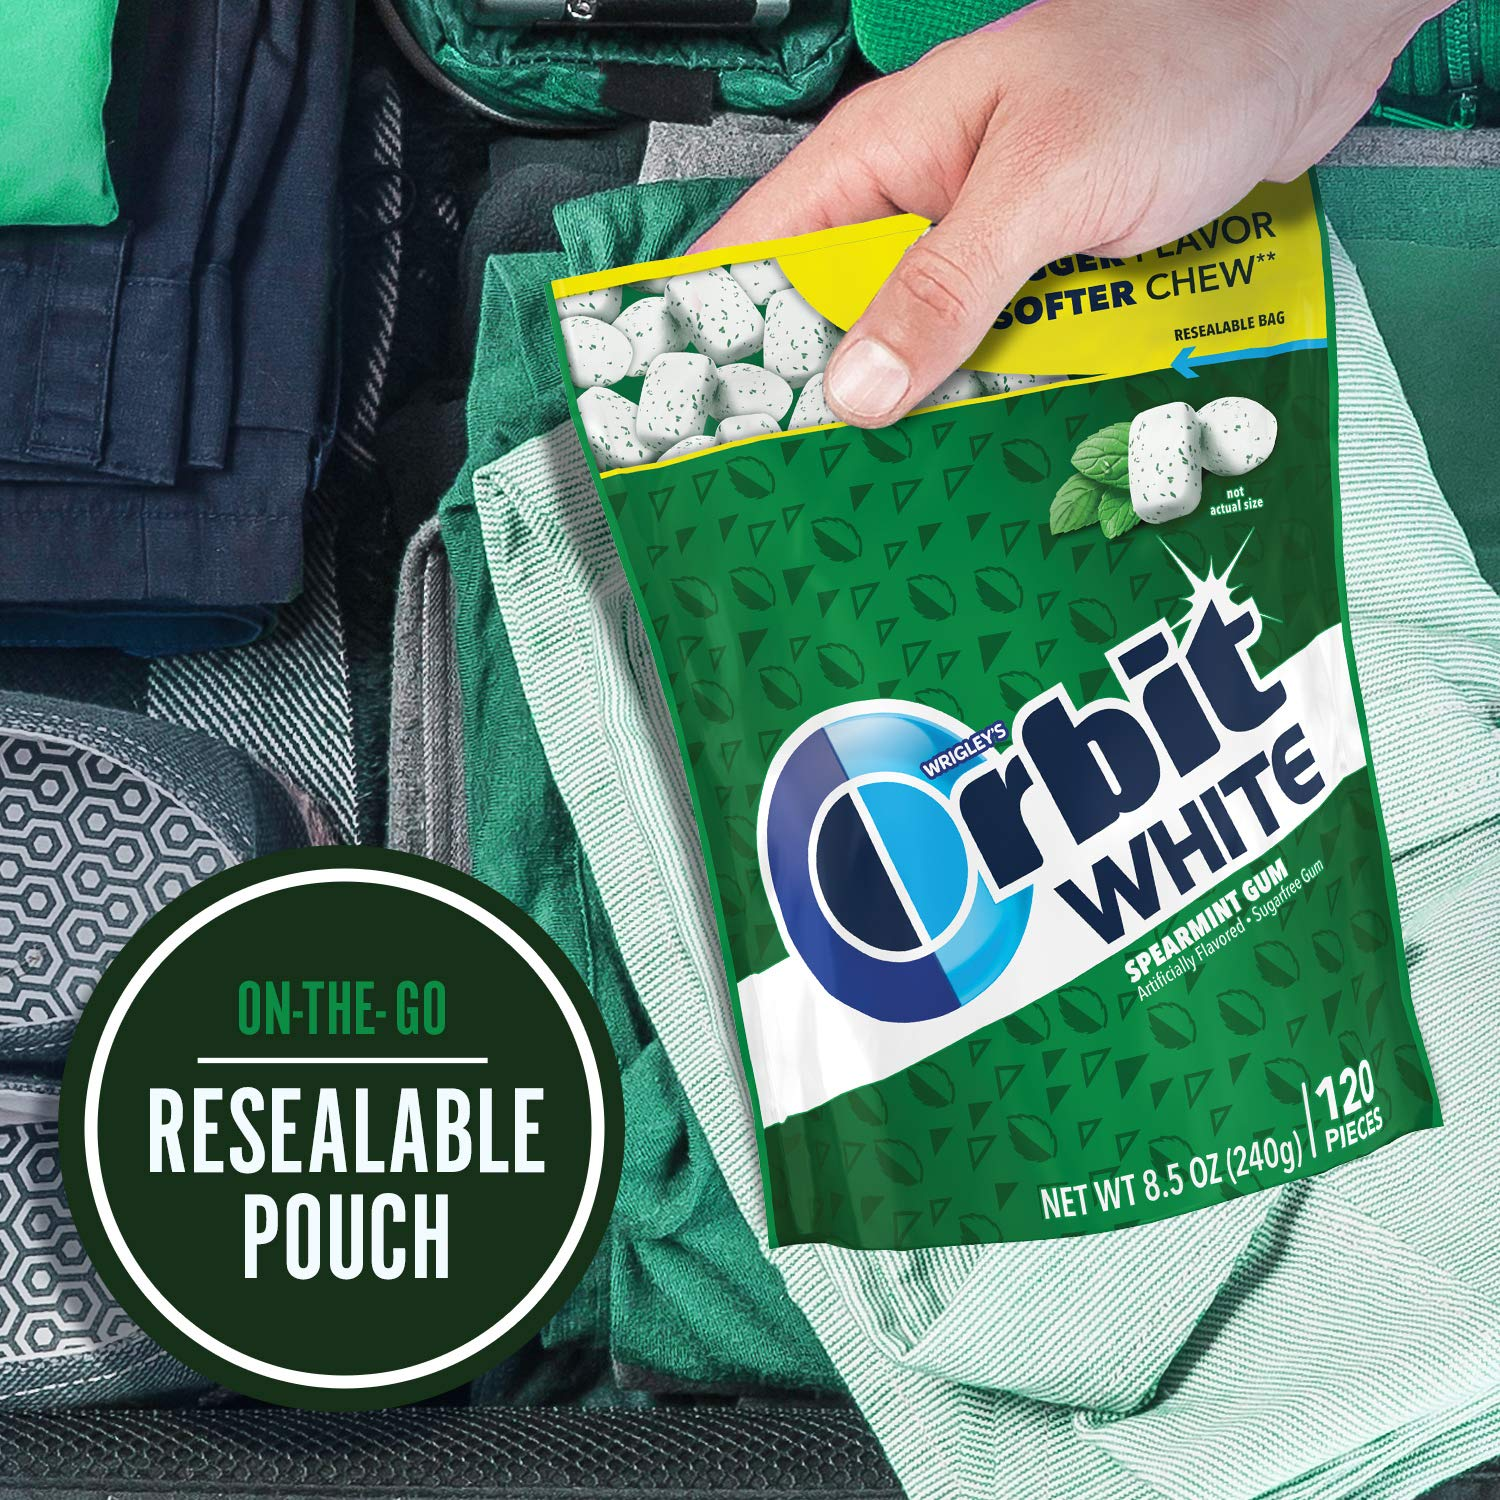 ORBIT Gum WHITE Spearmint Sugarfree Chewing Gum, 8.5 Ounces Resealable Bag, 120 Pieces (Pack of 8) by Orbit Gum (Image #5)